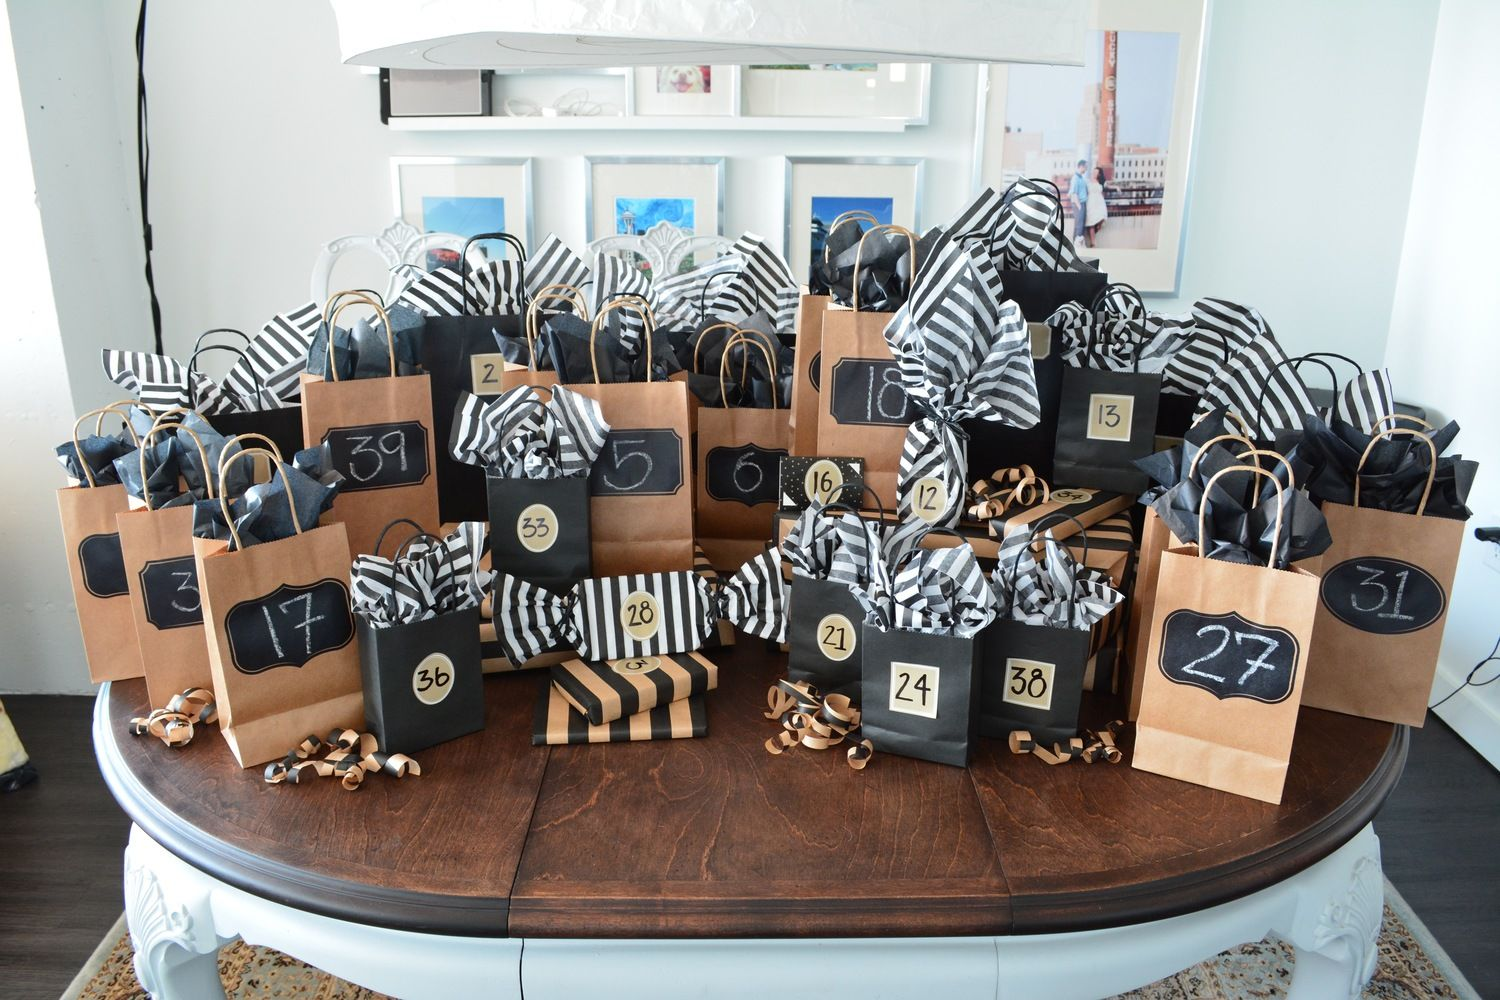 40 presents for the 40th birthday girl with images